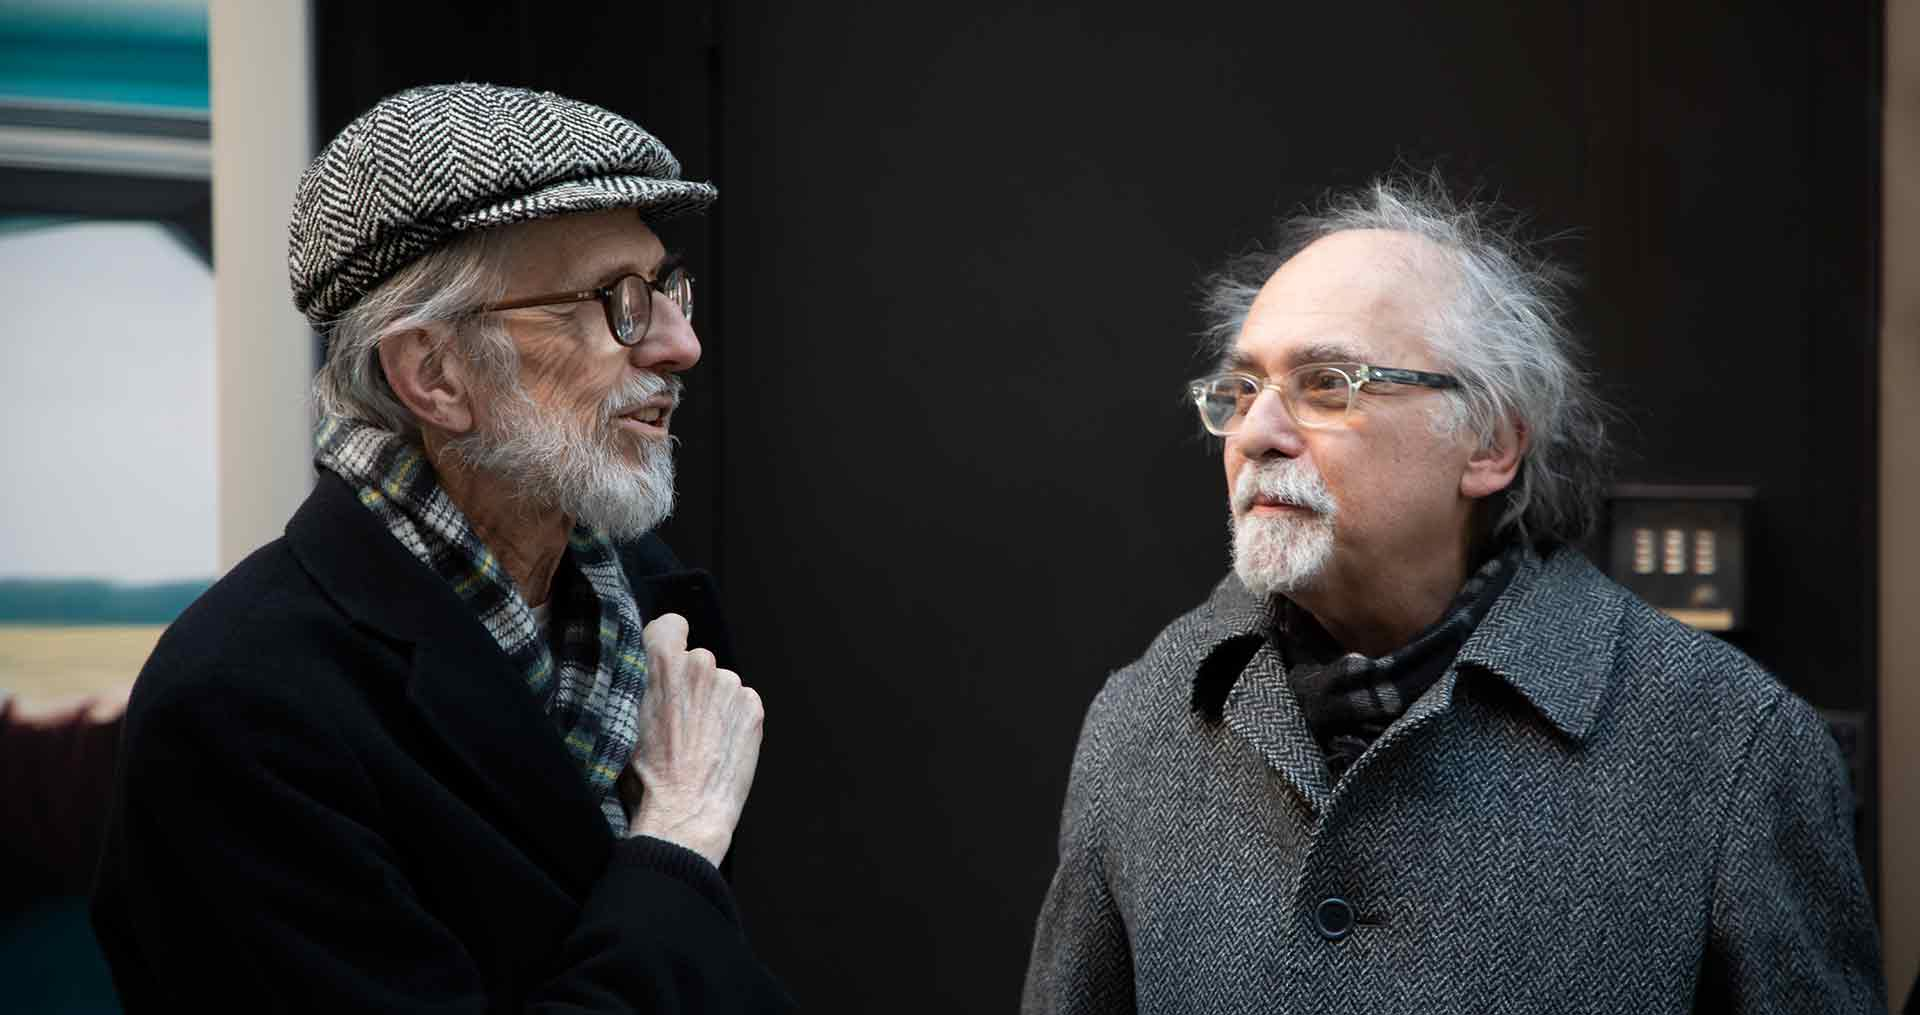 A photo of R. Crumb and Art Spiegelman in New York, dated 2019.